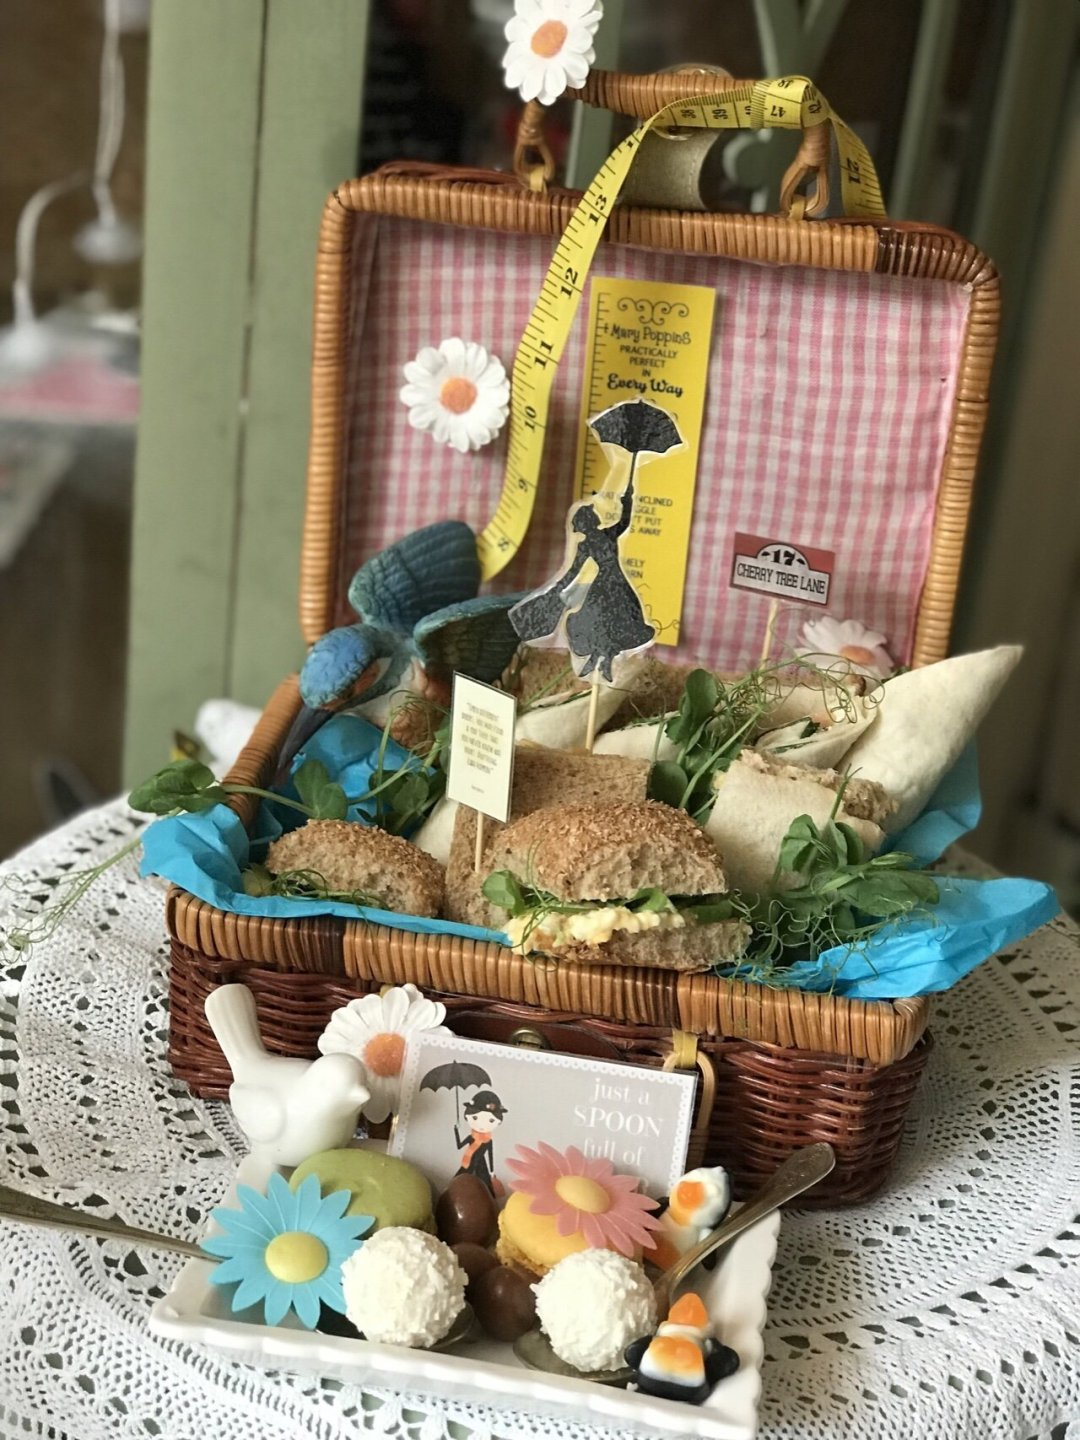 Mary Poppins Themed Afternoon Tea sandwiches in picnic basket